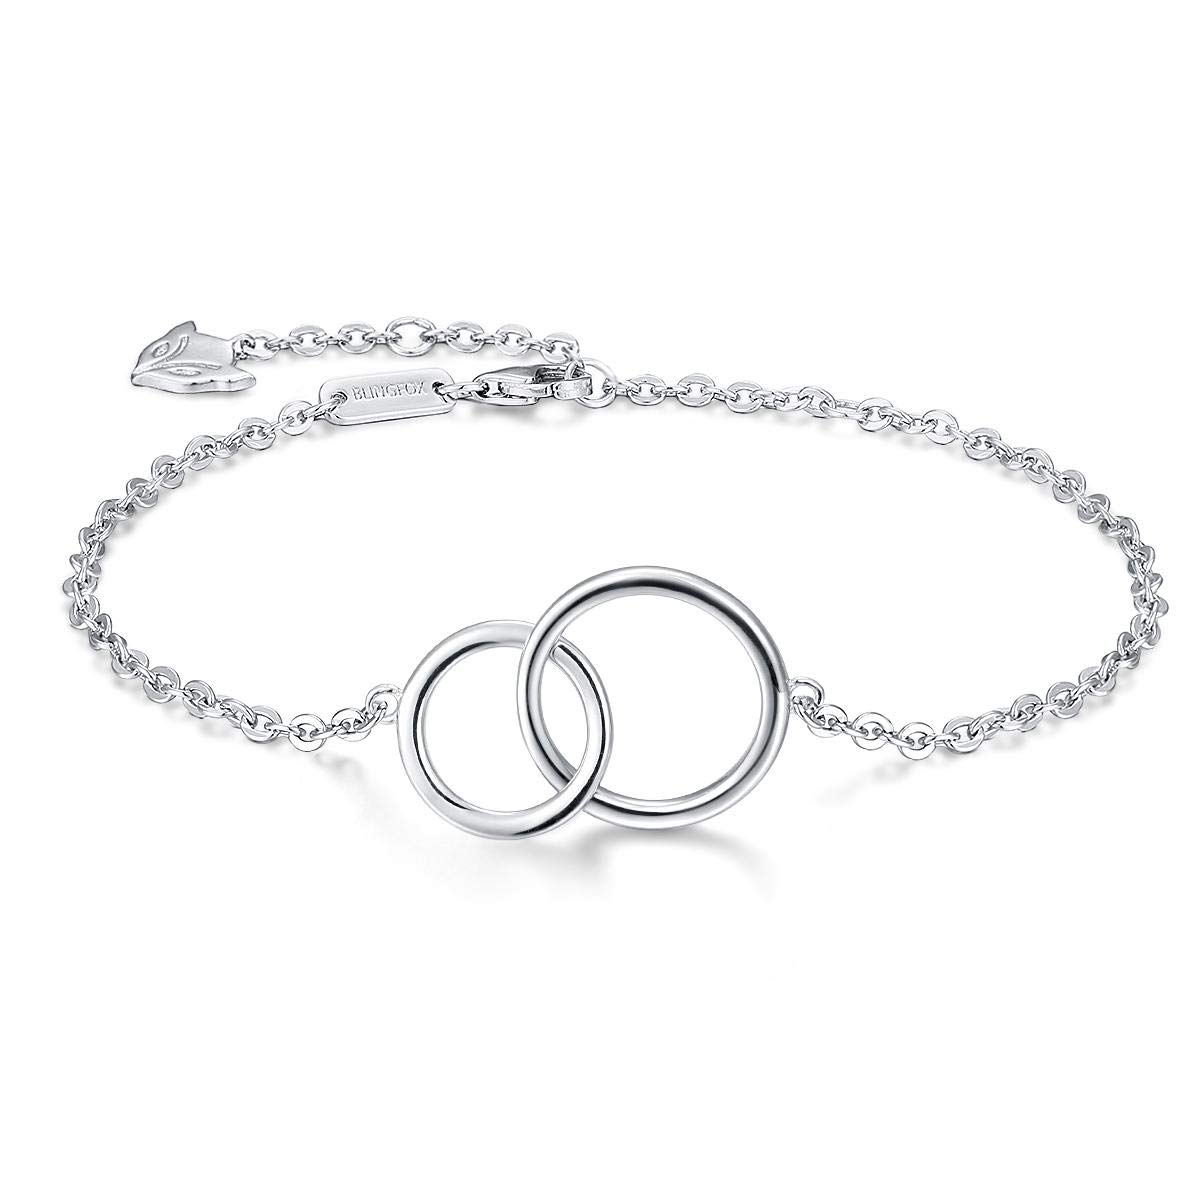 c4413a4e27f Blingfox 925 Sterling Silver Two Interlocking Infinity Circles Bracelet for  Sister Friend Mother: Amazon.co.uk: Jewellery